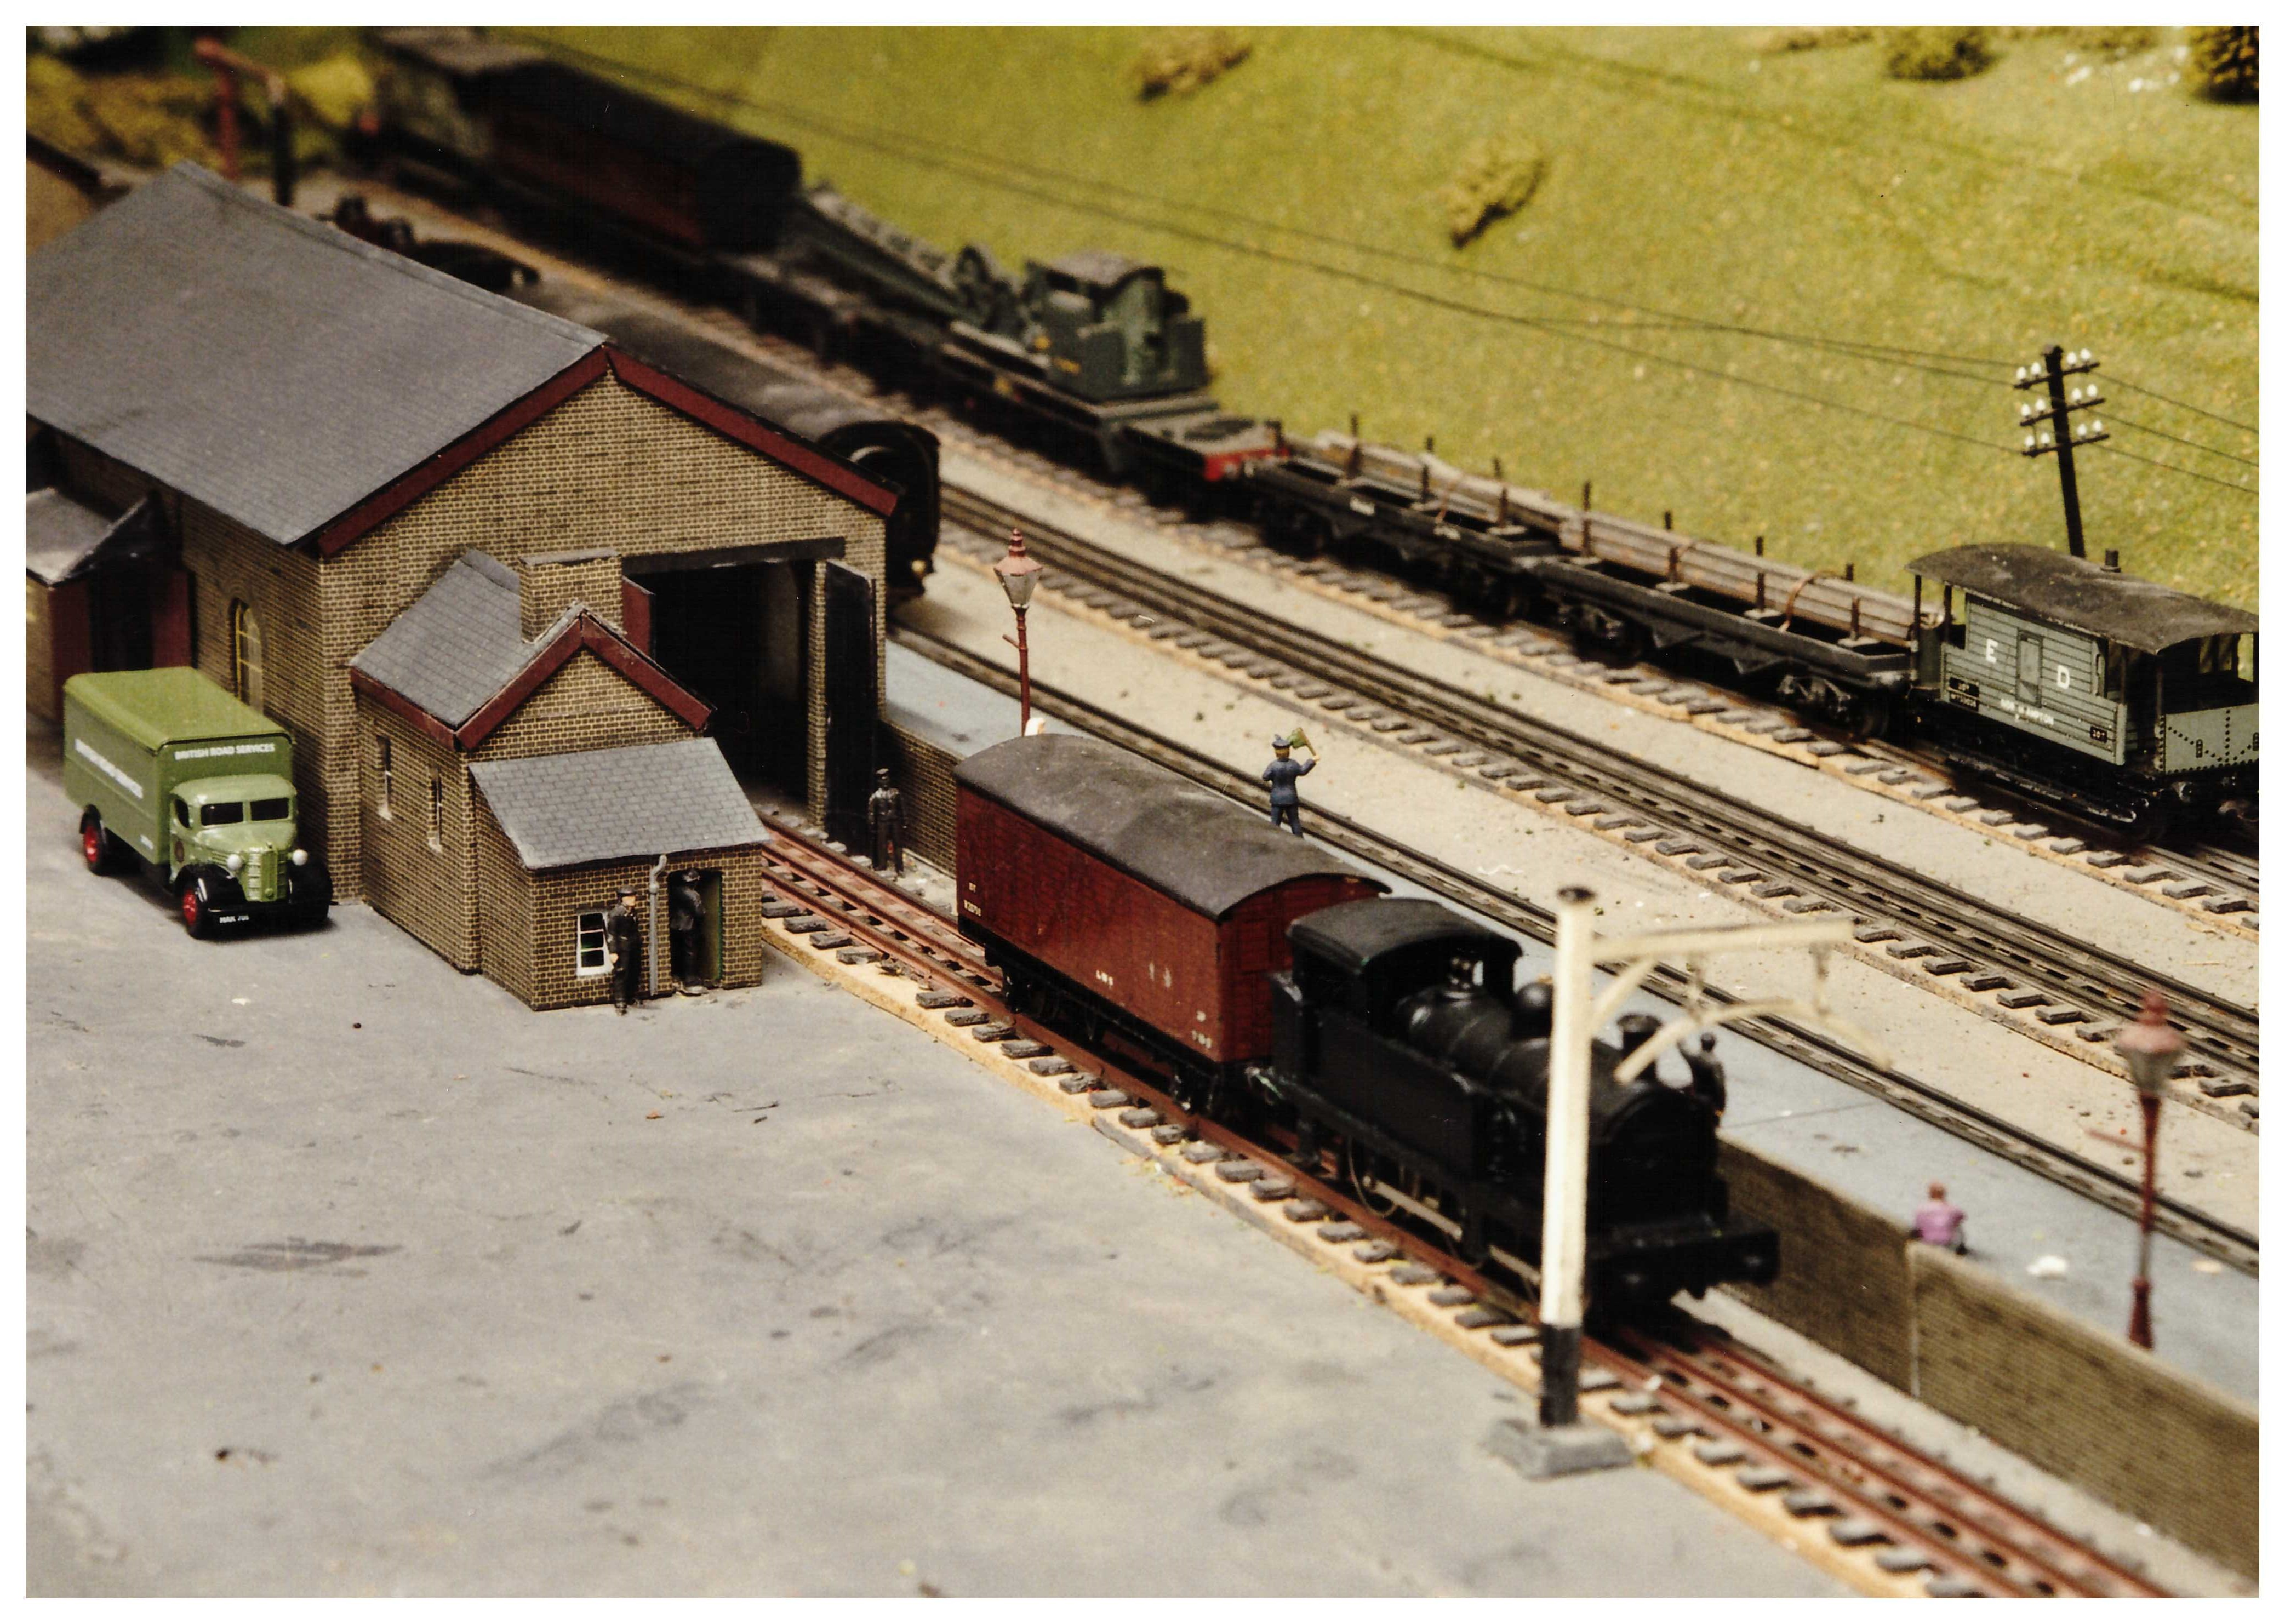 Goods shed and station pilot with Engineers siding at the back